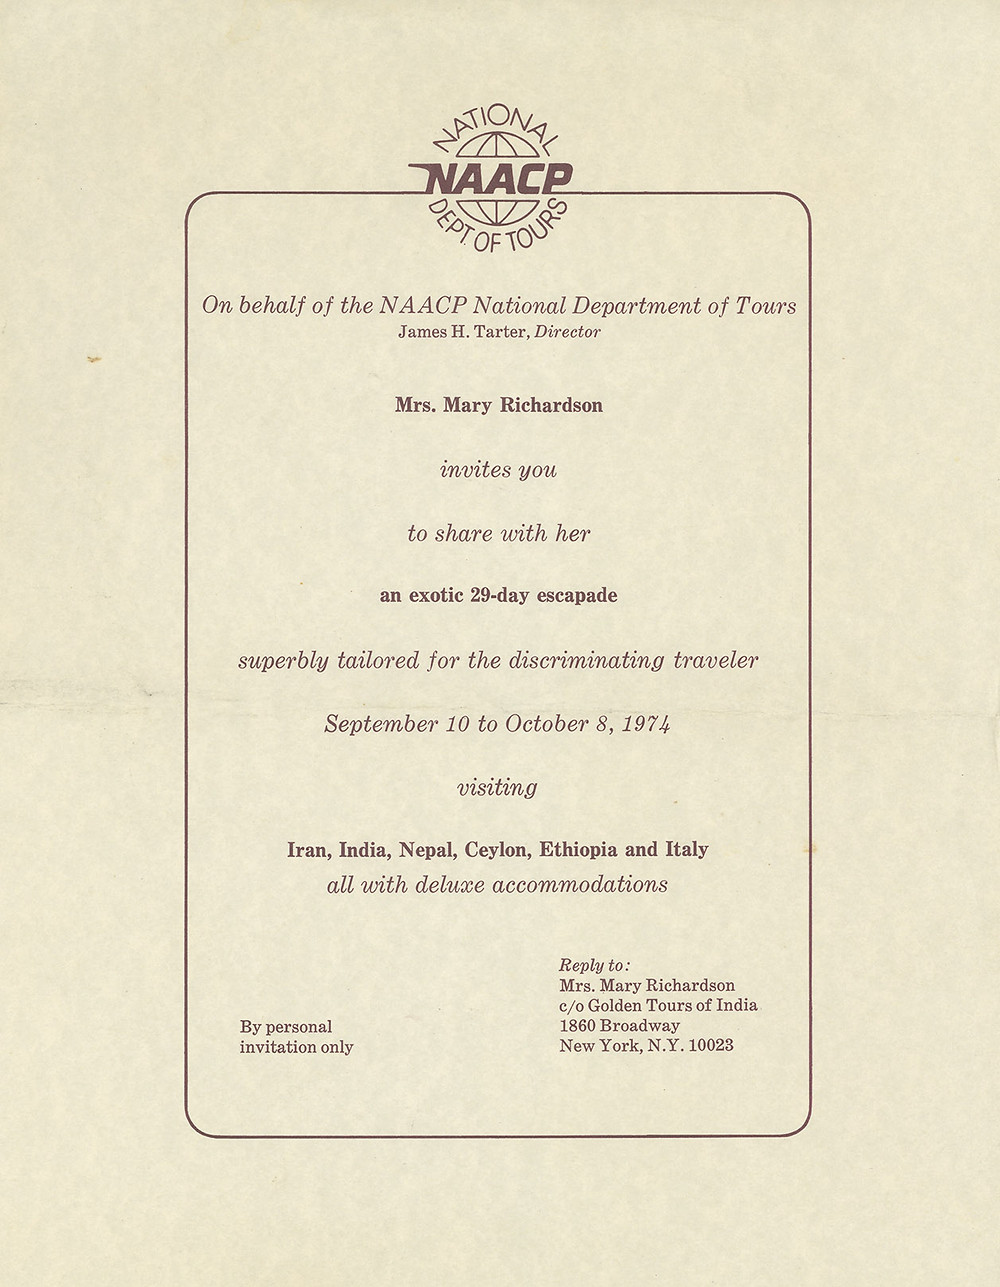 Official invitation for the NAACP National Department of Tours, organized by Mary Richardson, courtesy of Golden Tours of India 1974